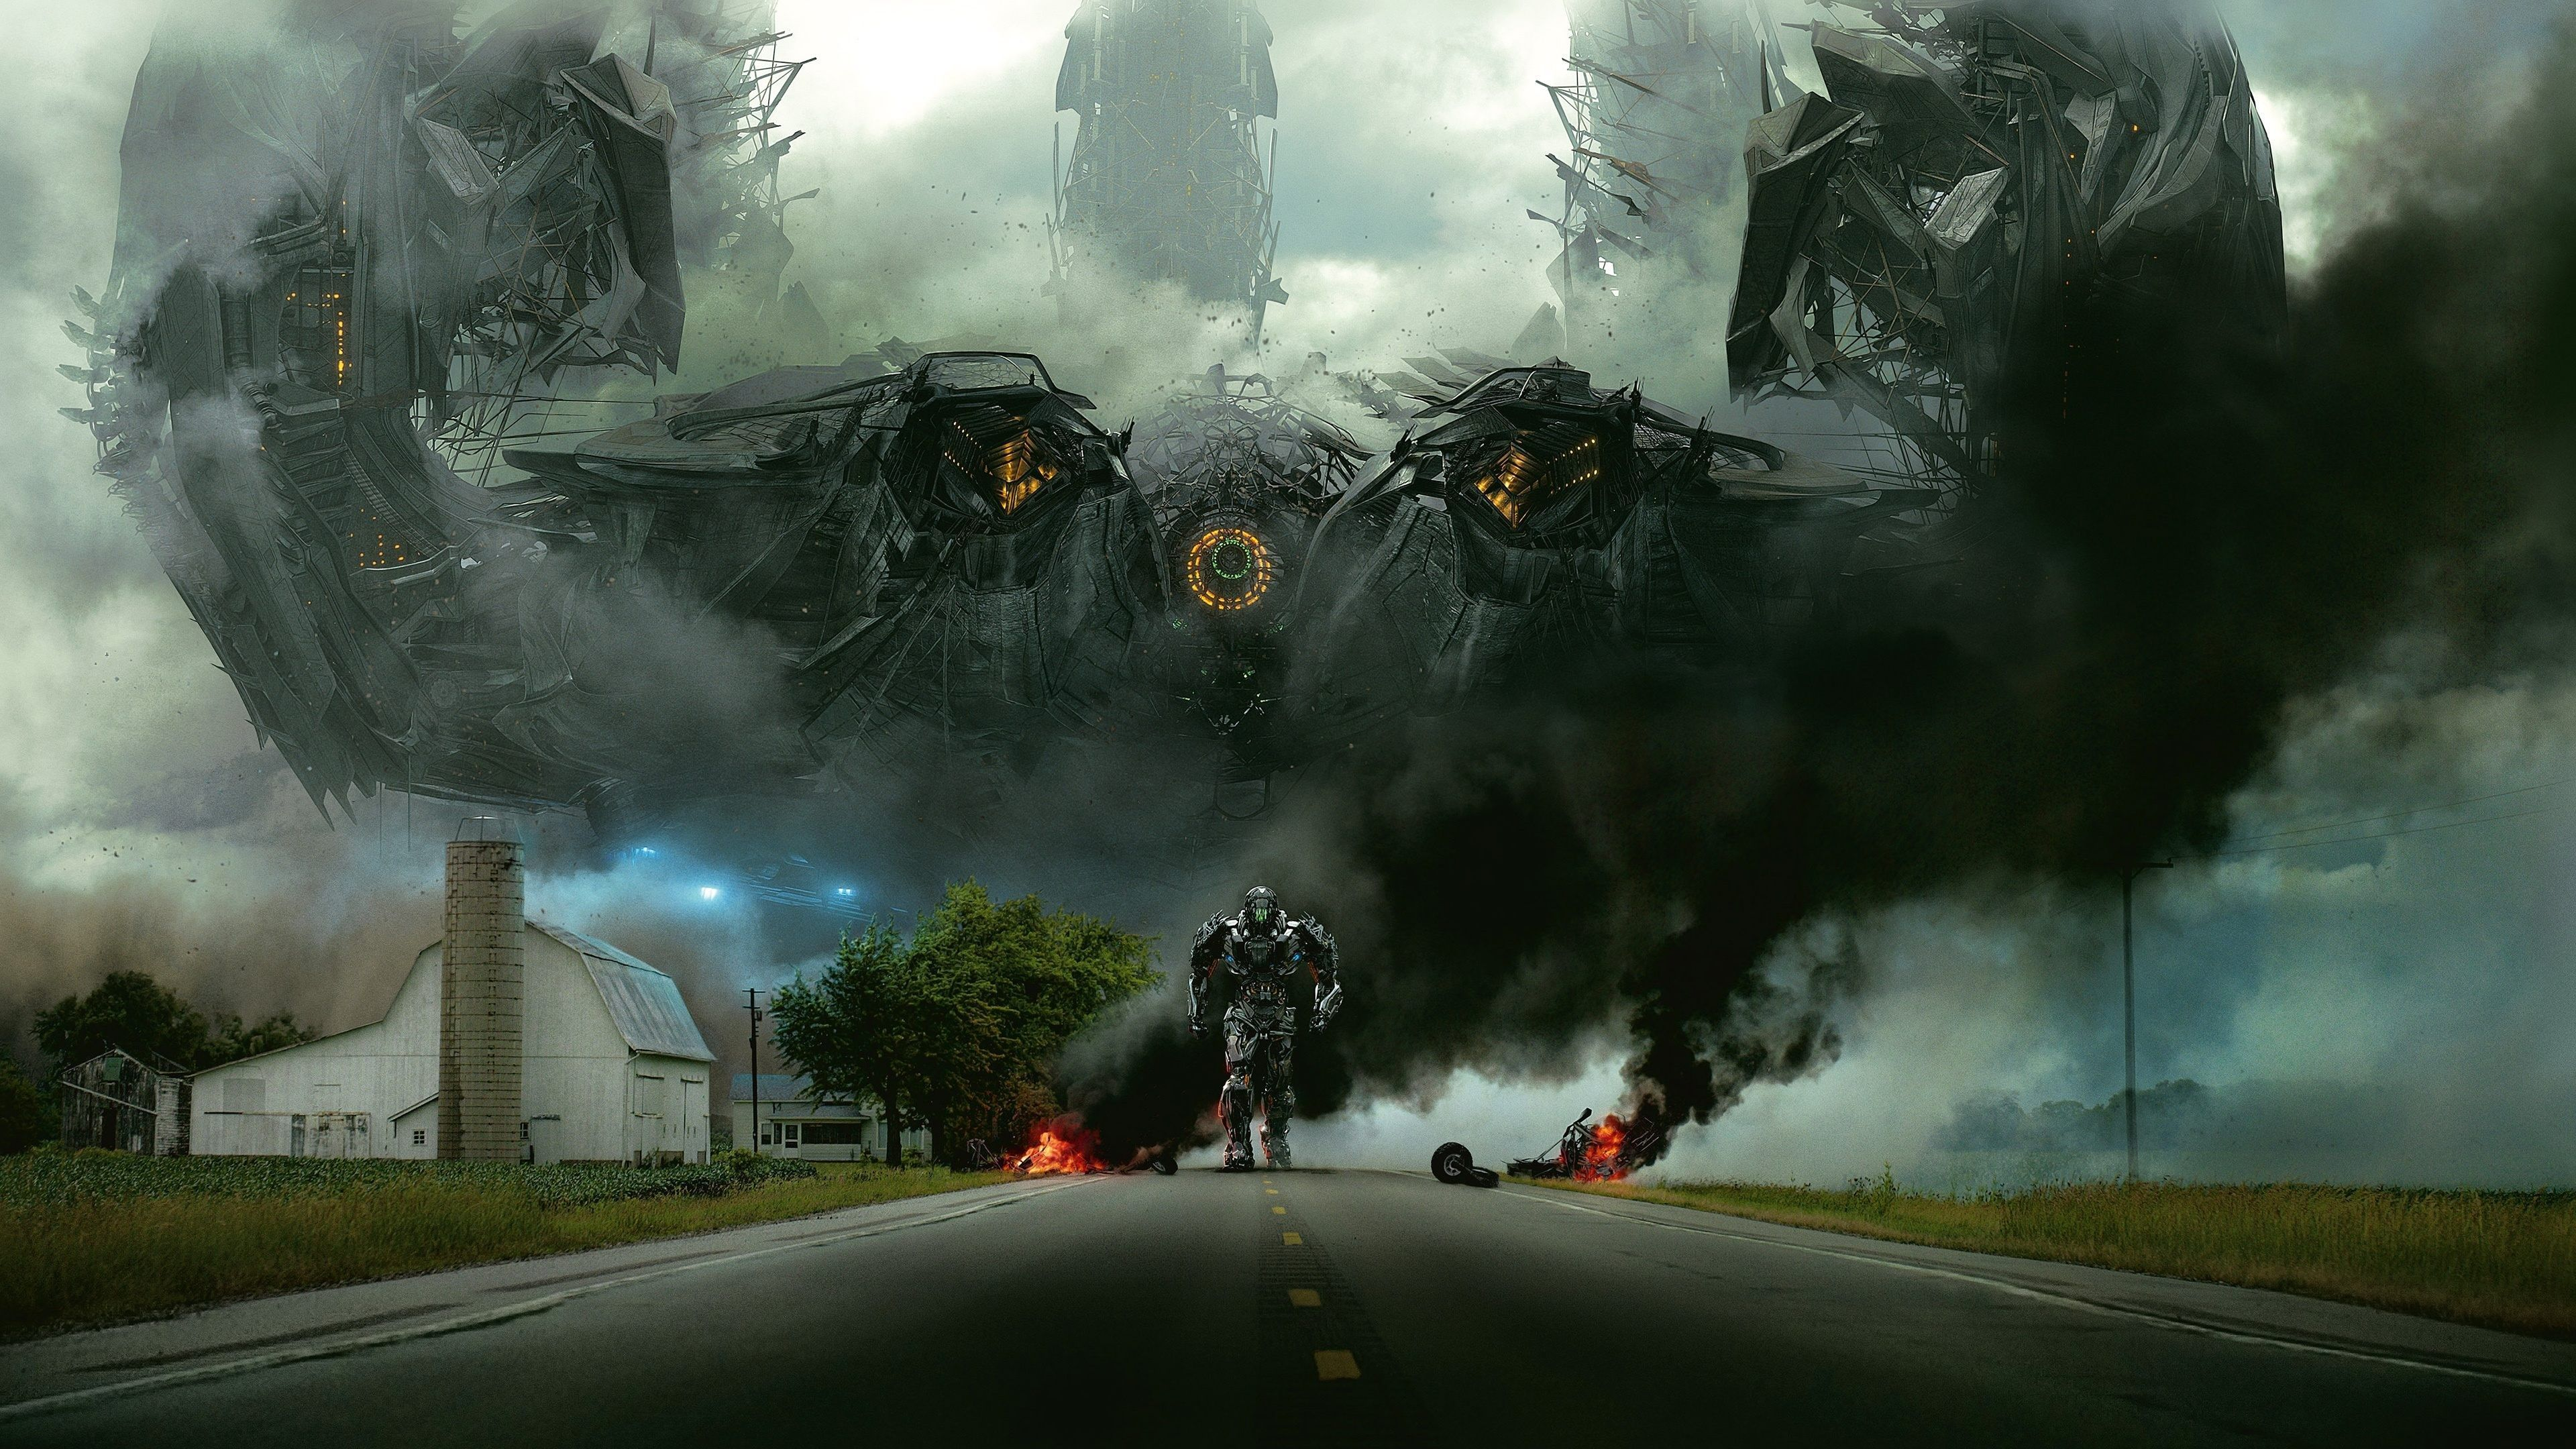 transformers hd images